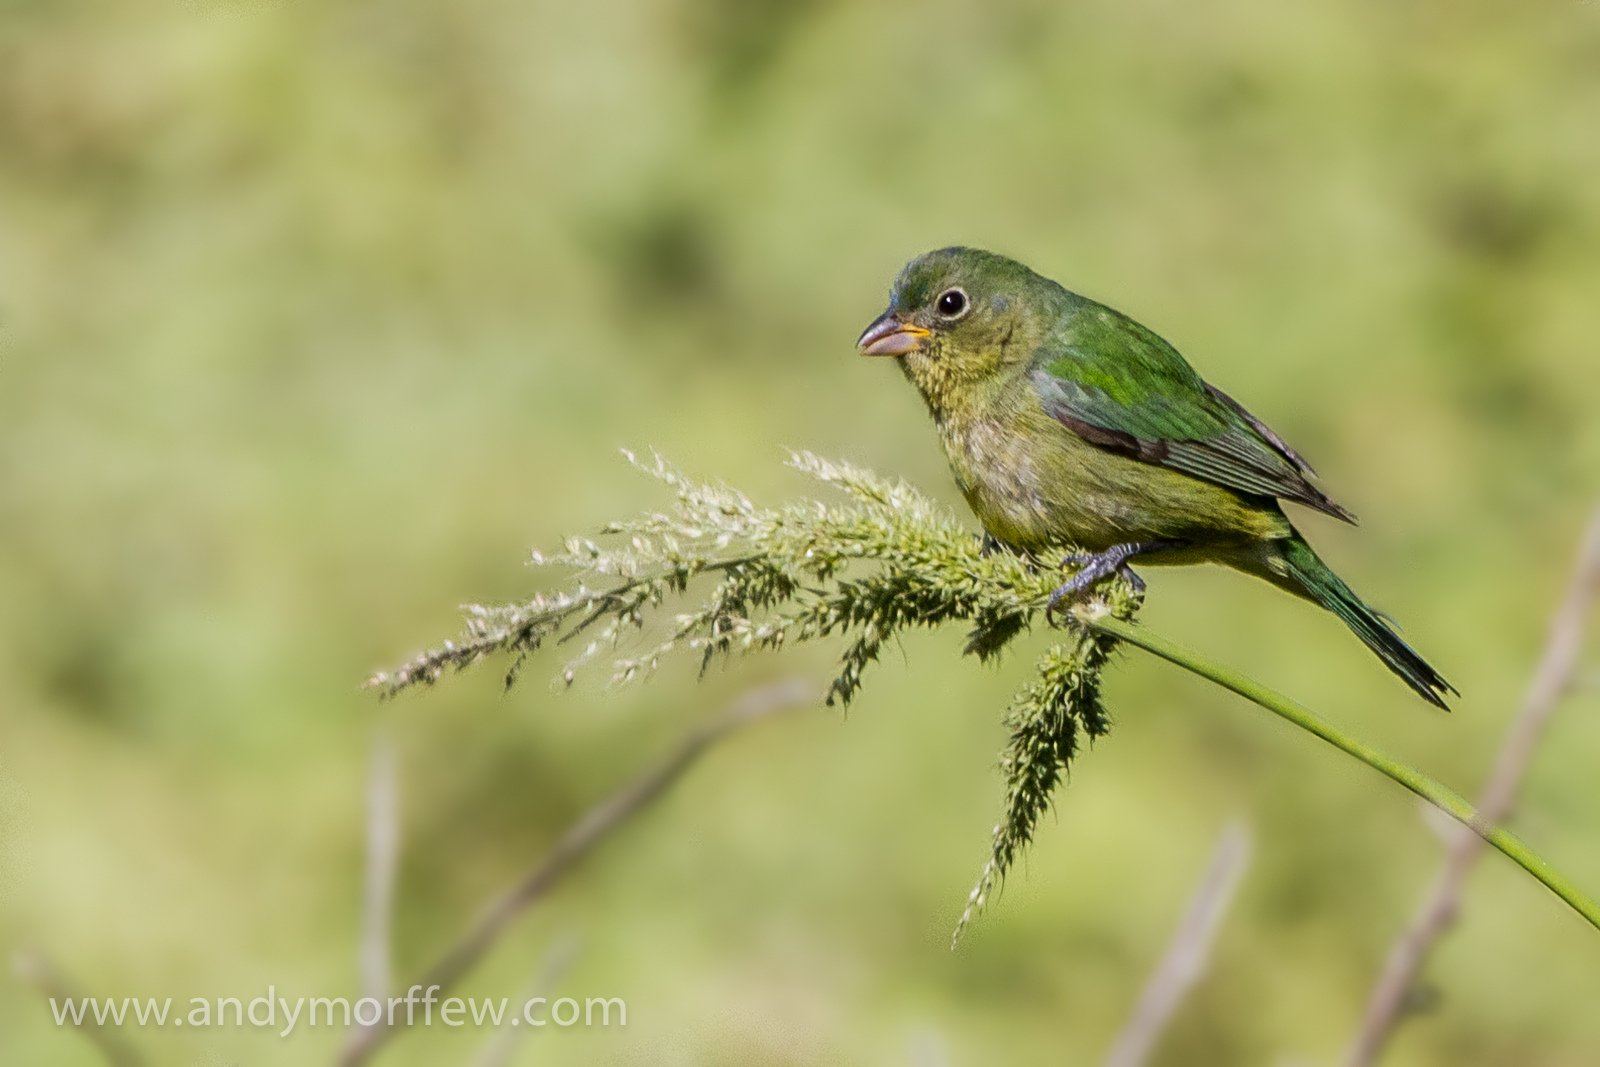 Female Painted Bunting cc-by-nd Andy Morffew